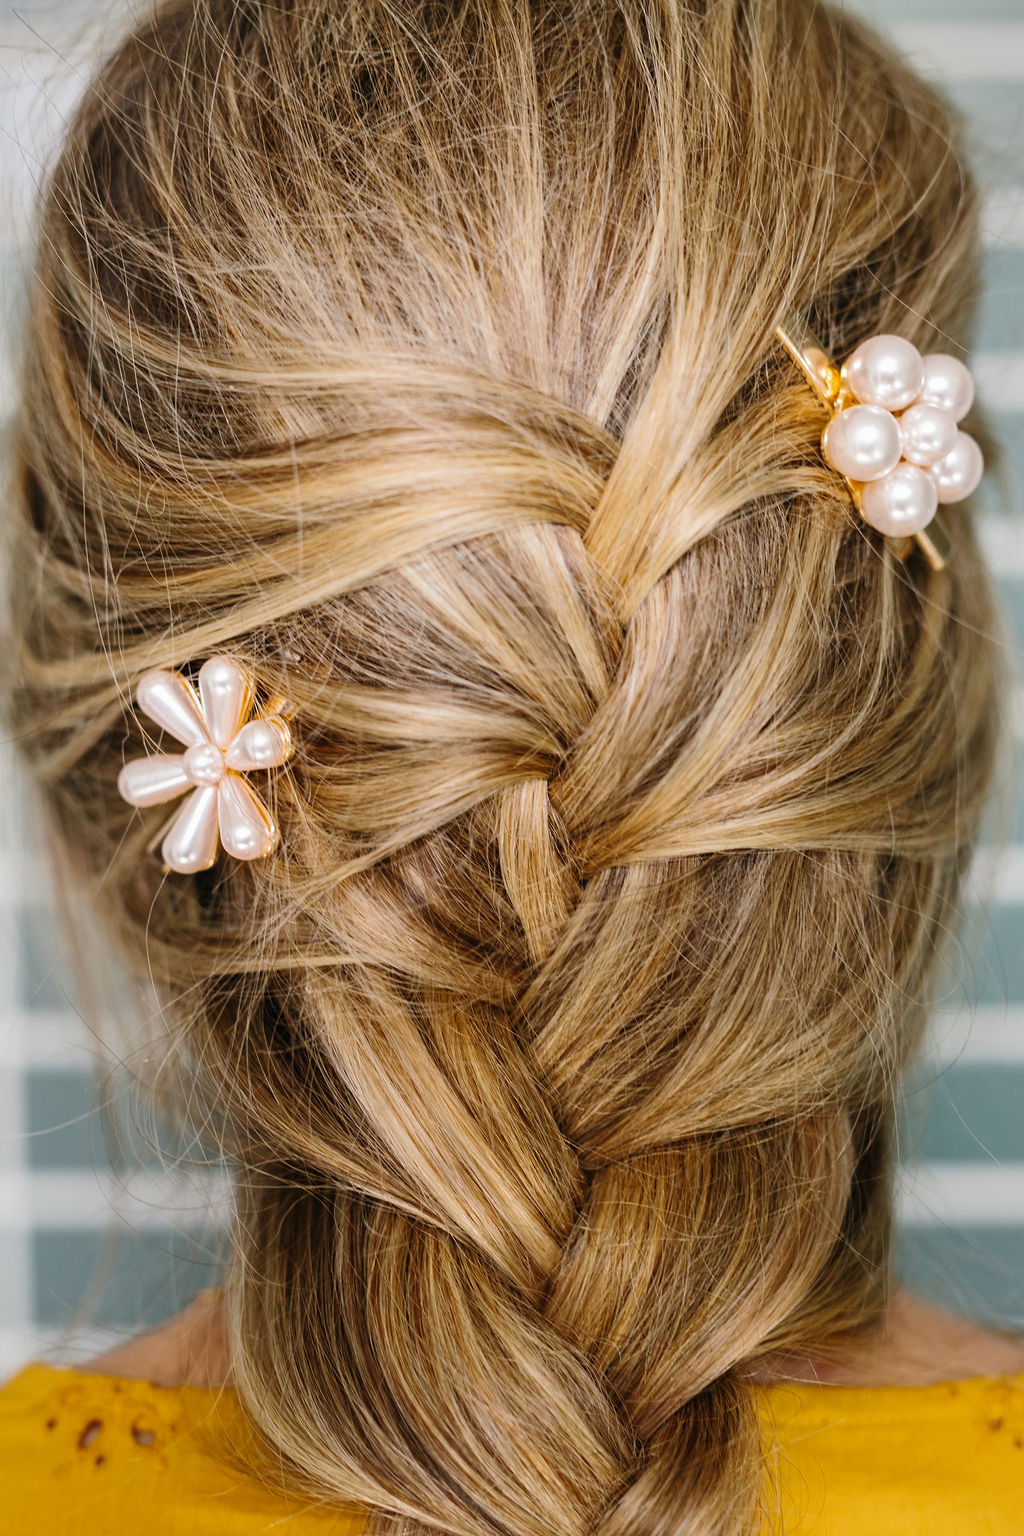 Phenomenal How To French Braid An Easy Step By Step Tutorial For A Relaxed Schematic Wiring Diagrams Amerangerunnerswayorg